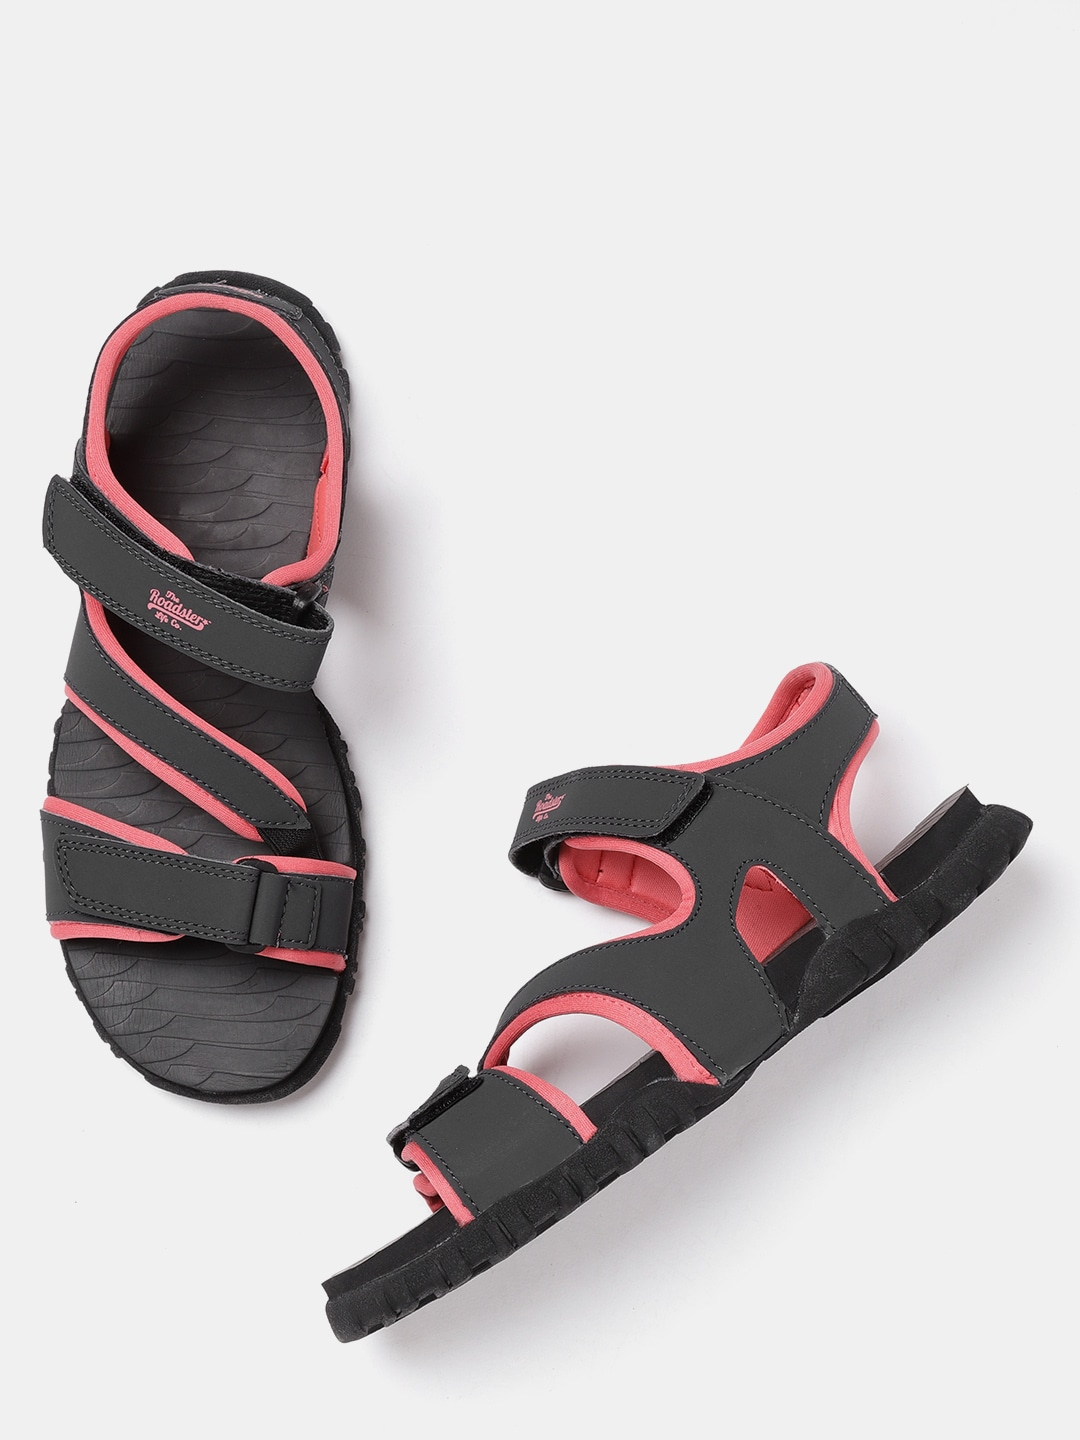 62822a920b816 Sports Sandals - Buy Sports Sandals Online in India